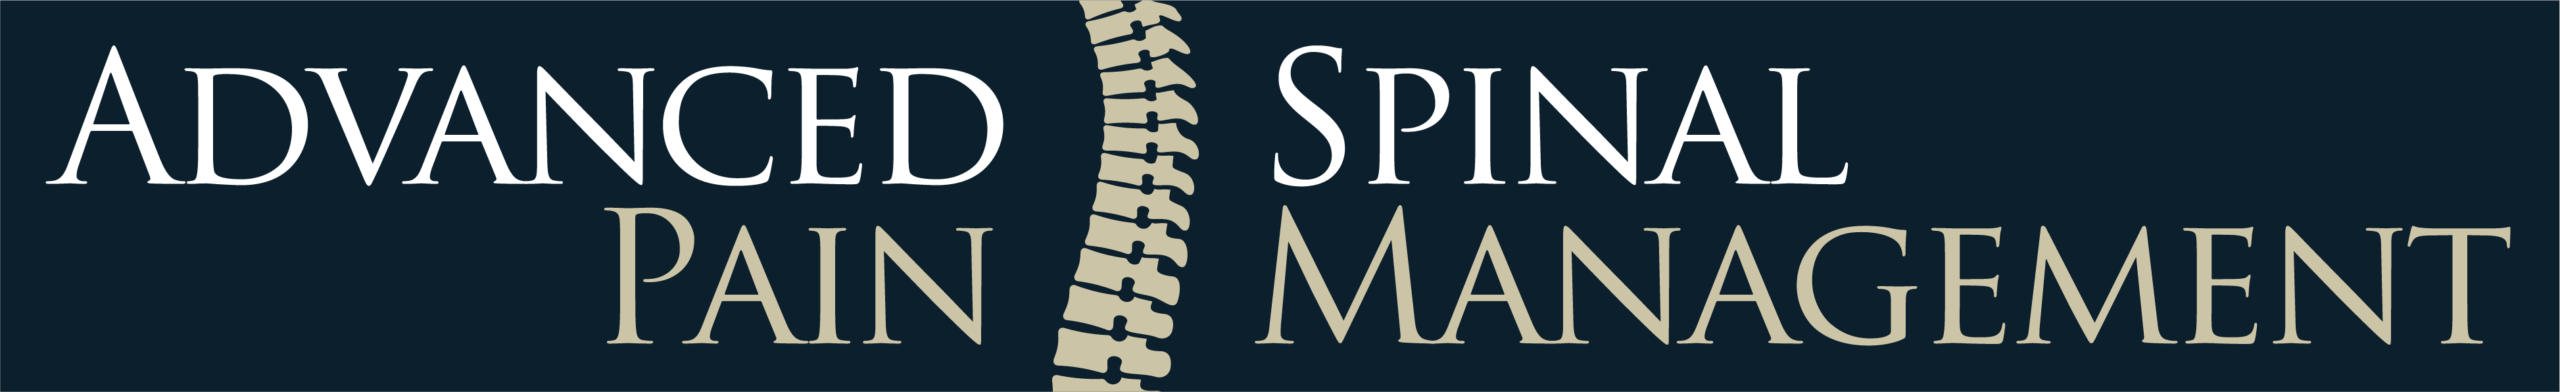 ASPM | Advanced Spinal Pain Management